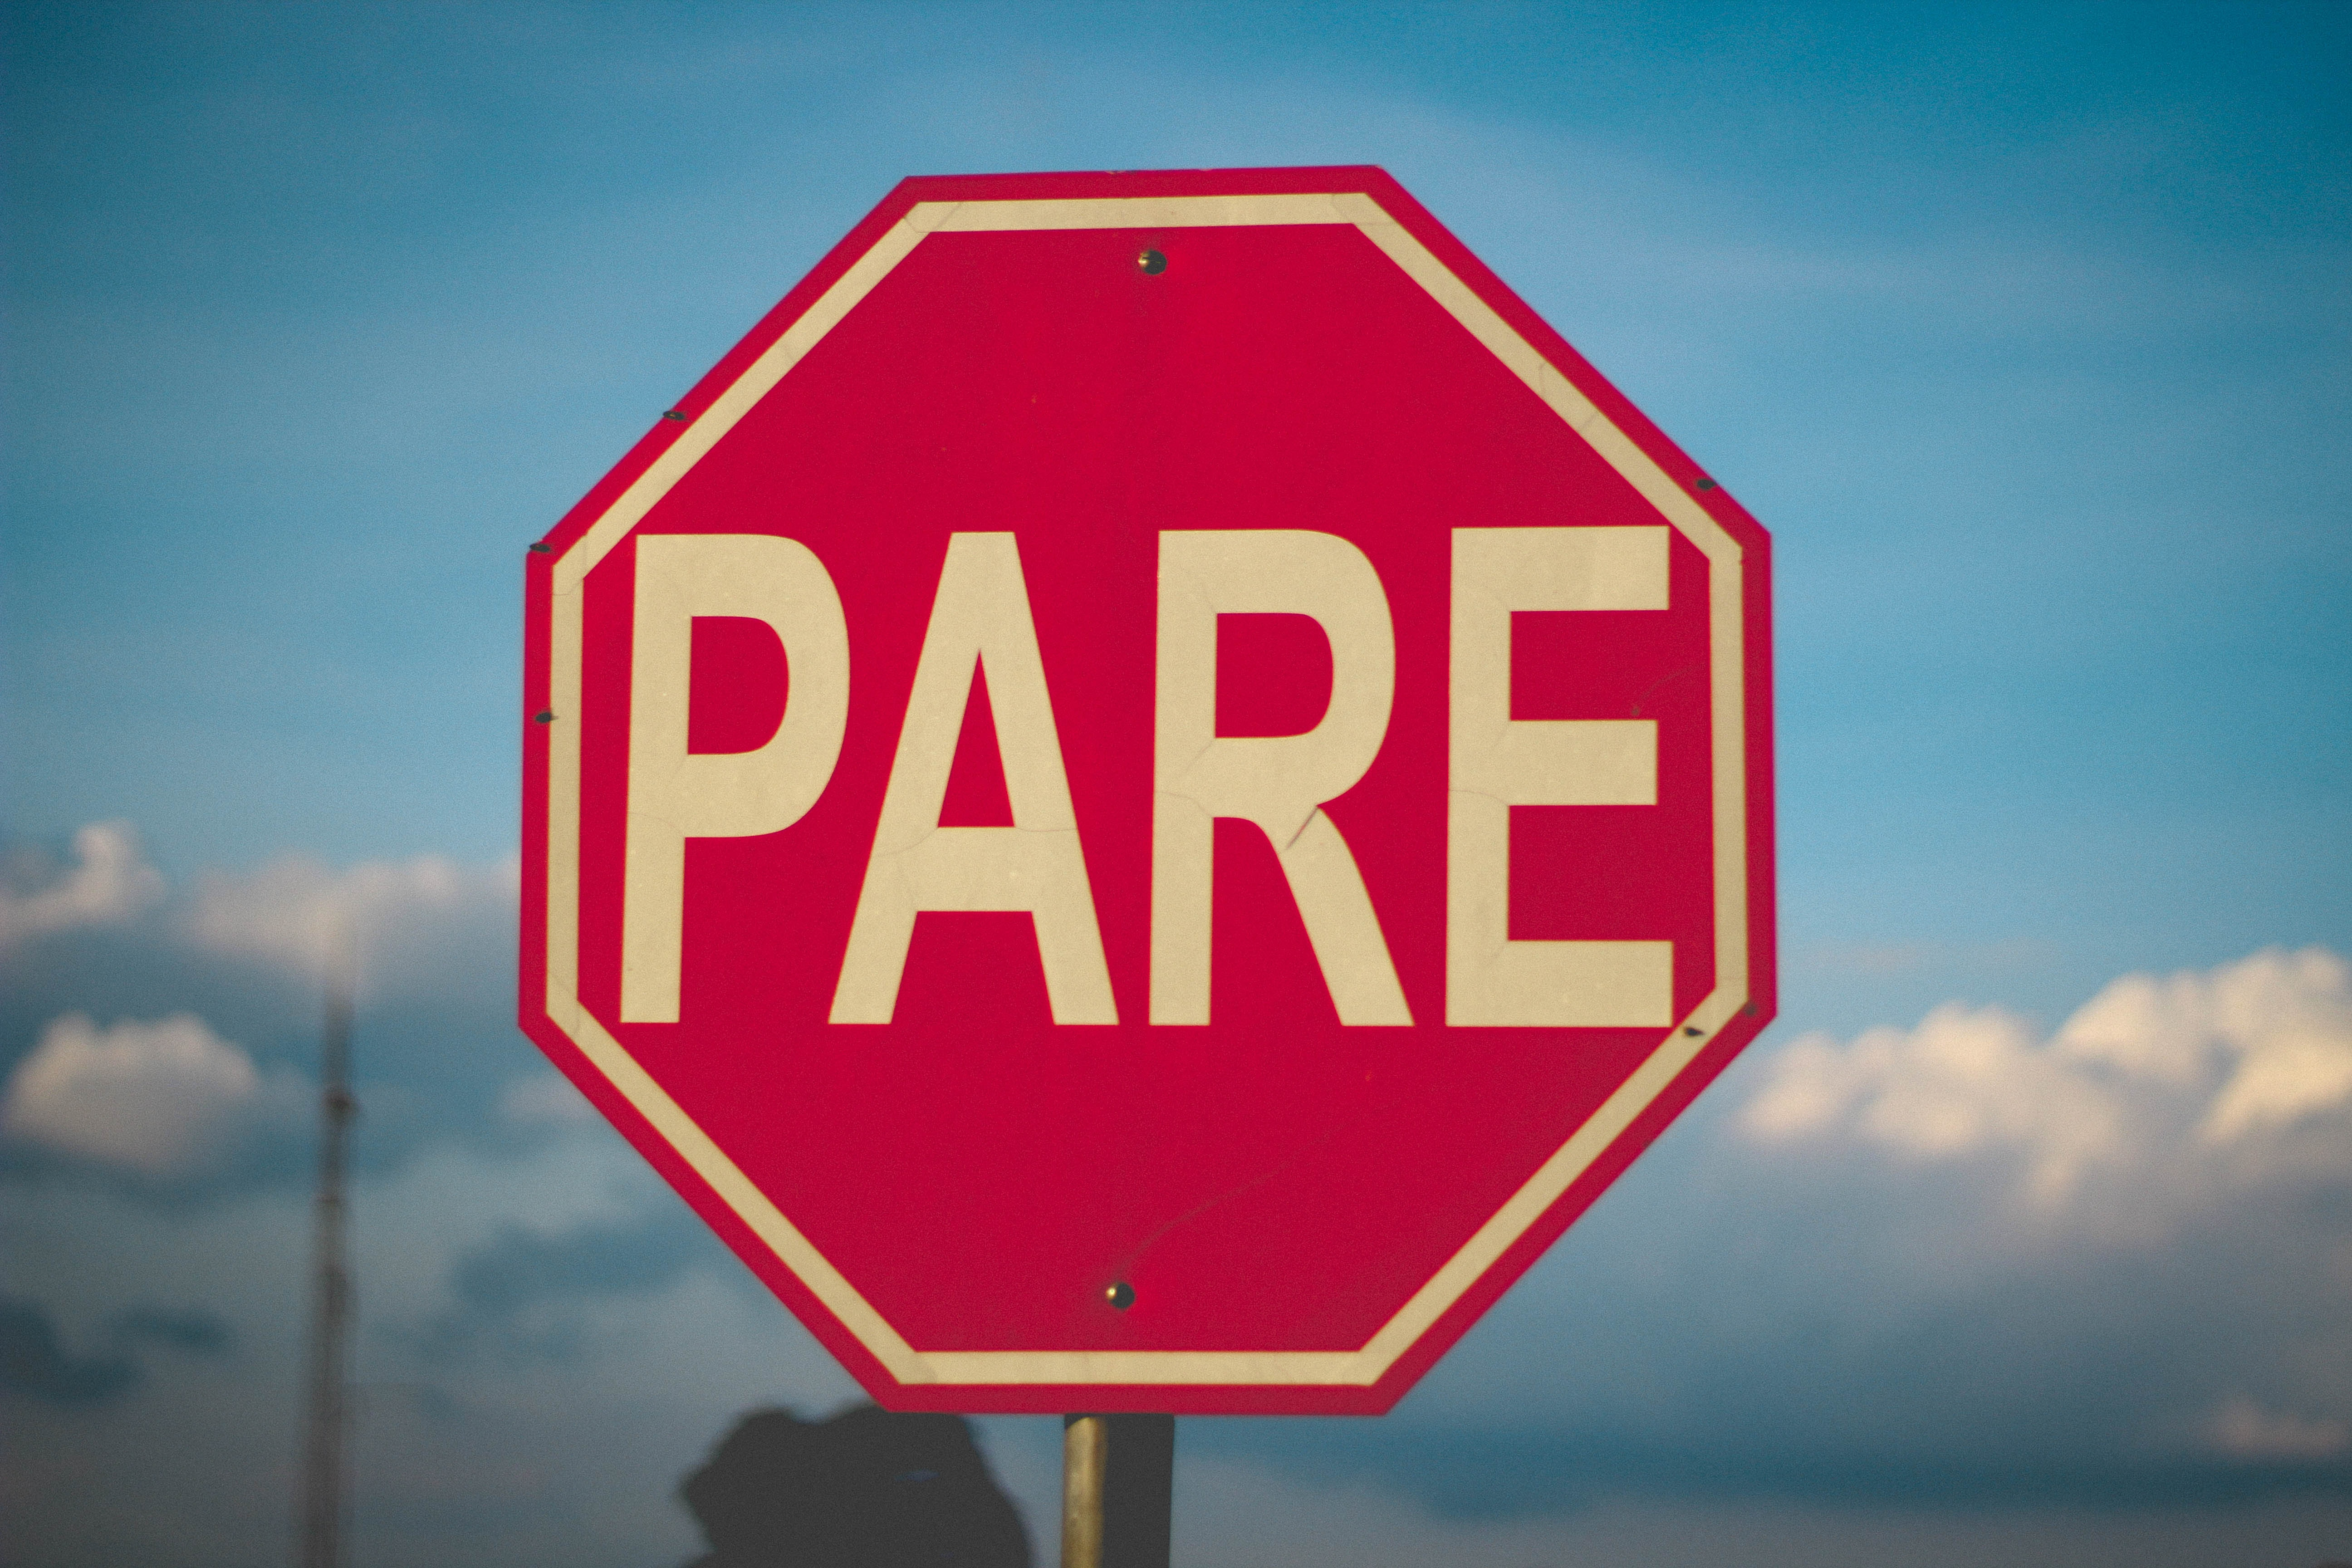 Pare / stop